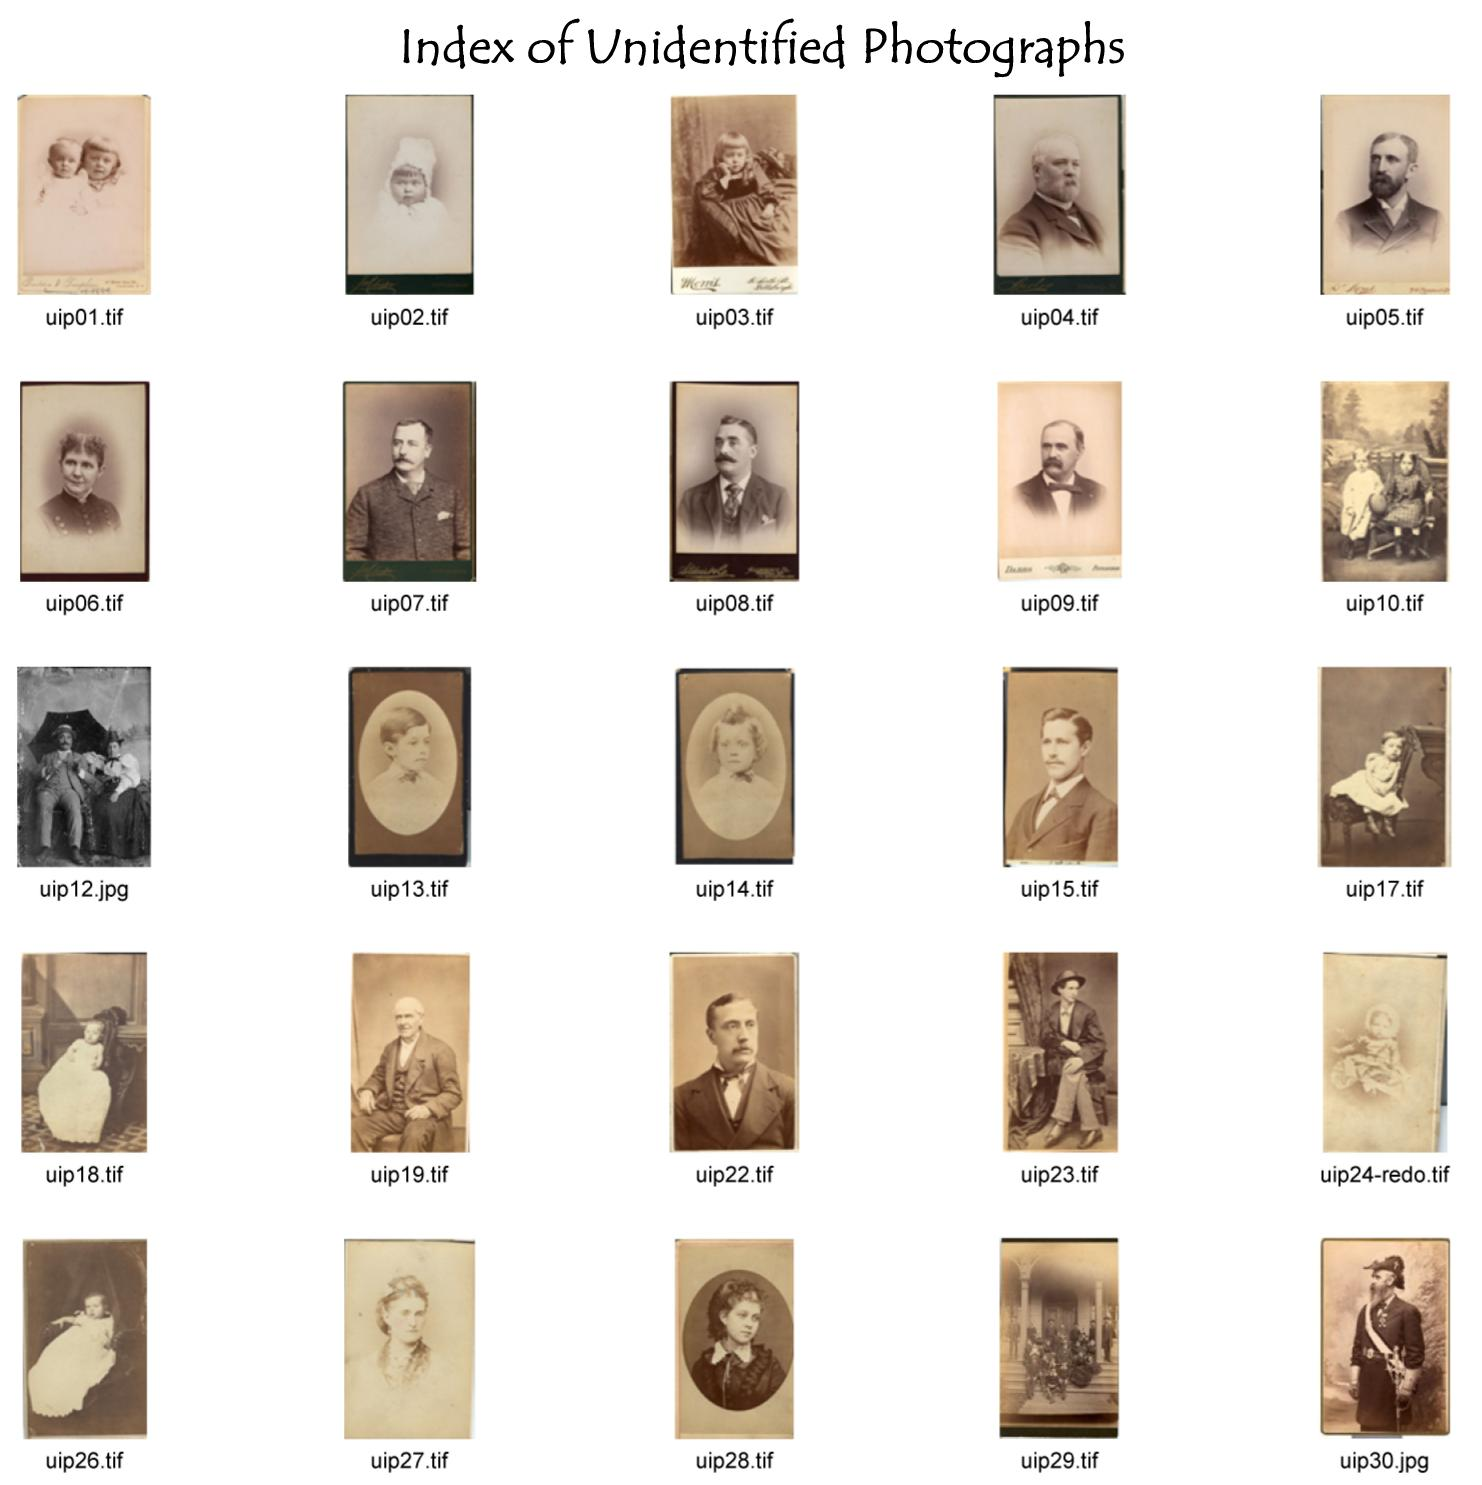 Index of Unidentified Photographs